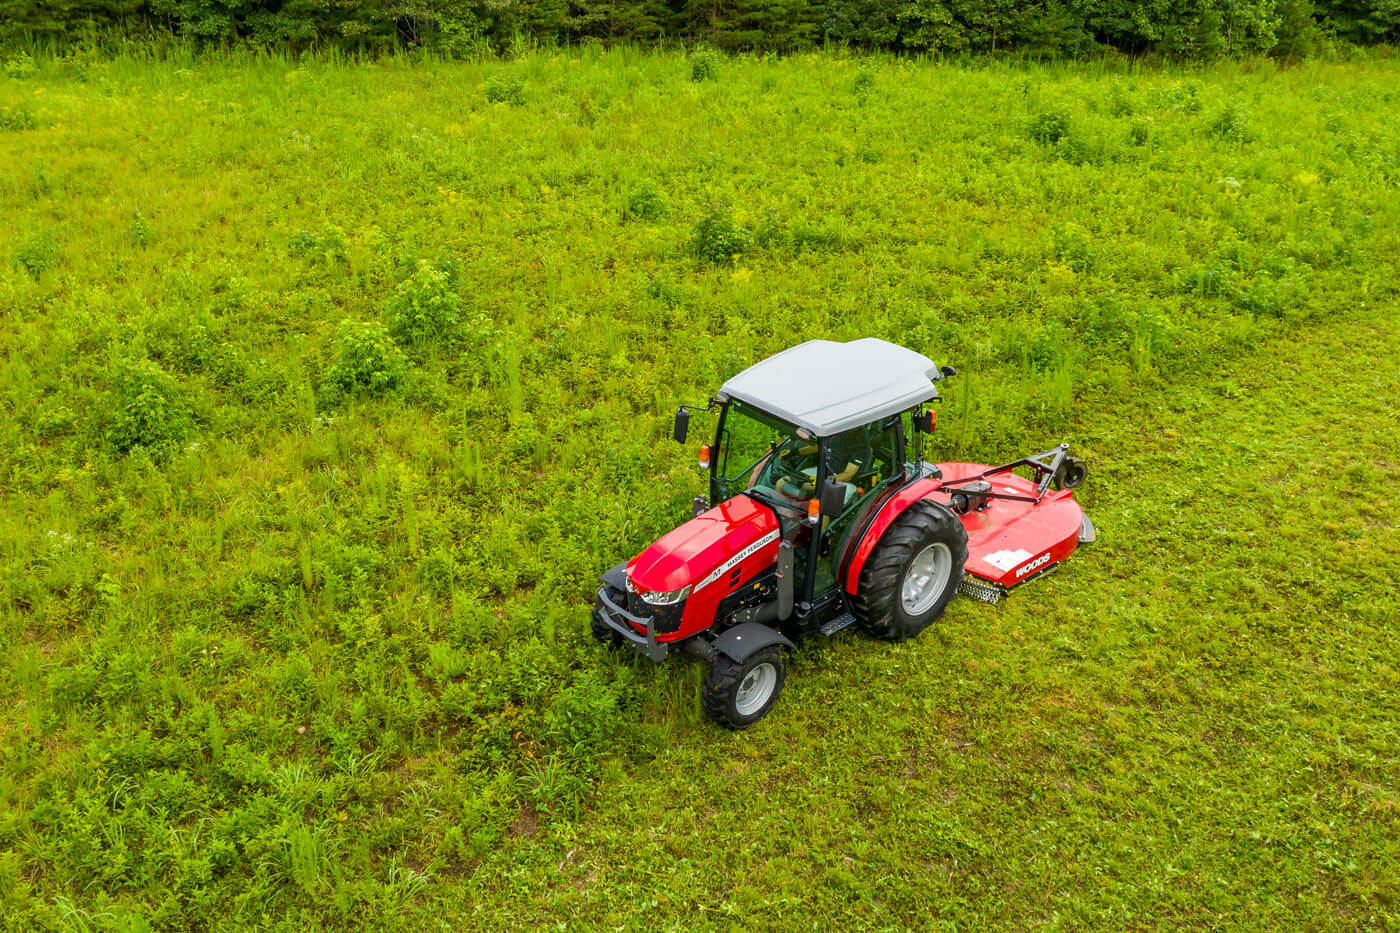 MF 2800 M | Woods Massey Ferguson Red Implement Instant Rebate with MF Tractor Purchase